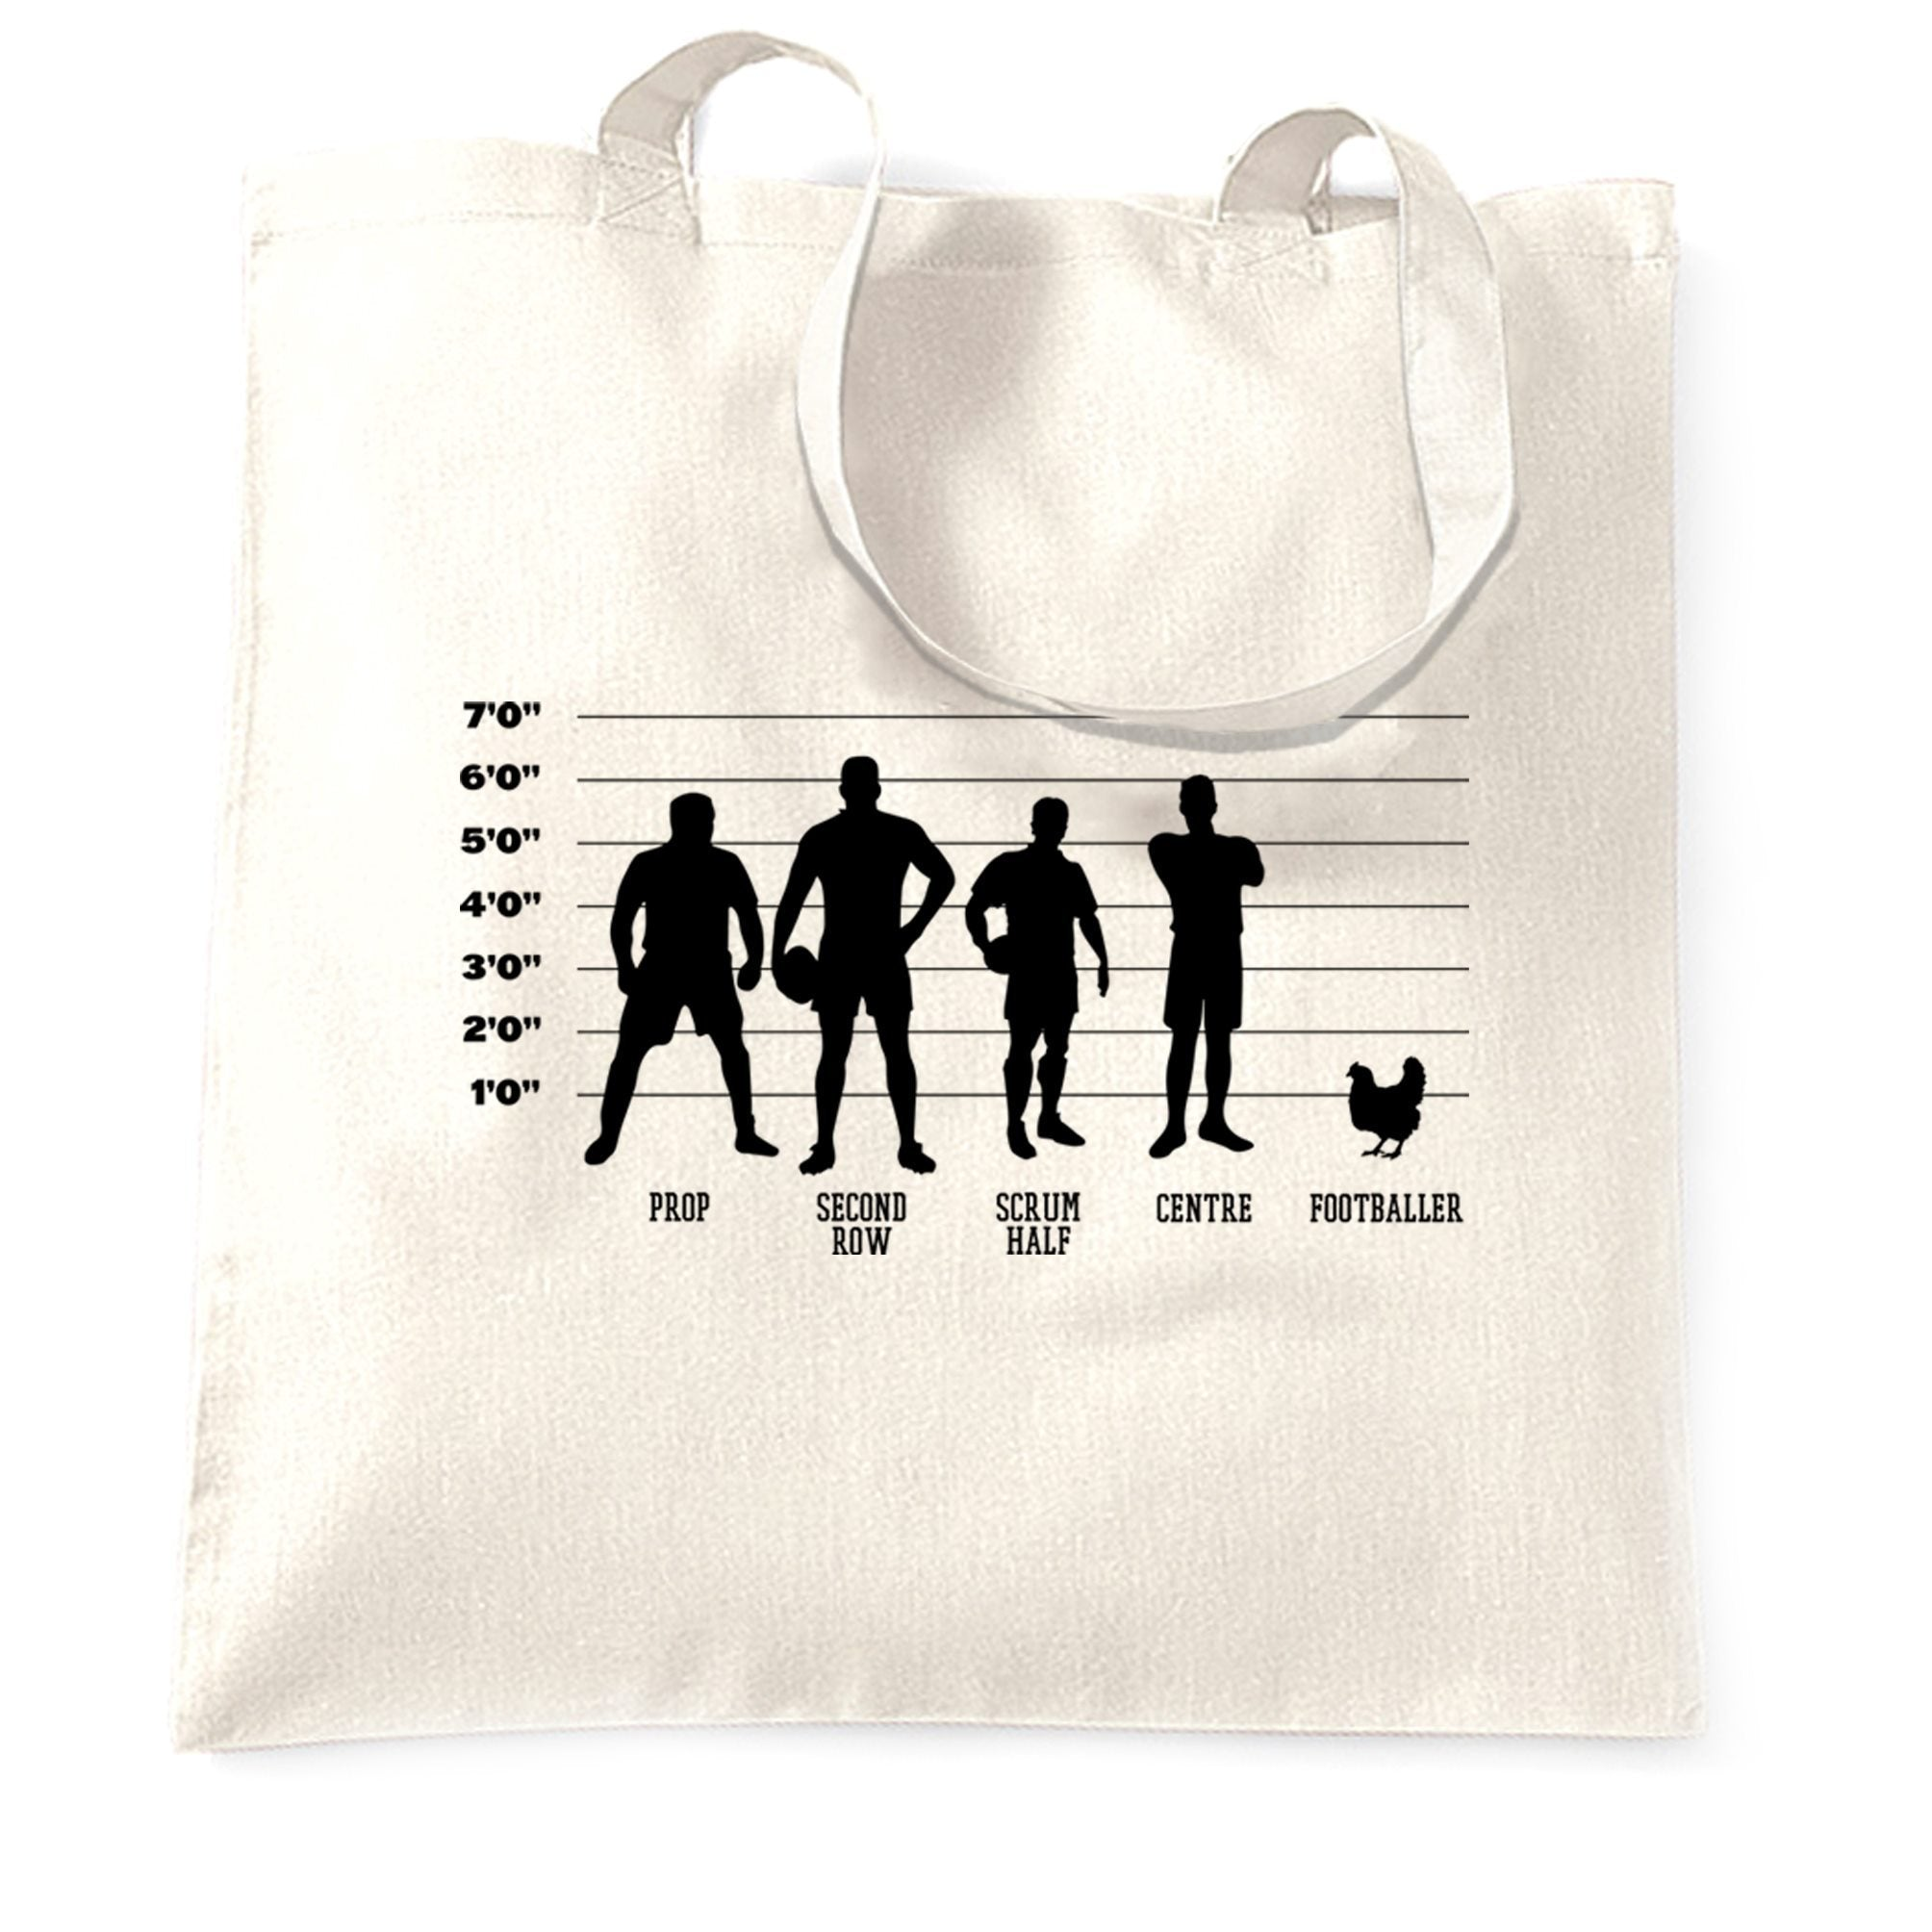 Joke Sports Tote Bag Rugby Vs Football Chicken Lineup